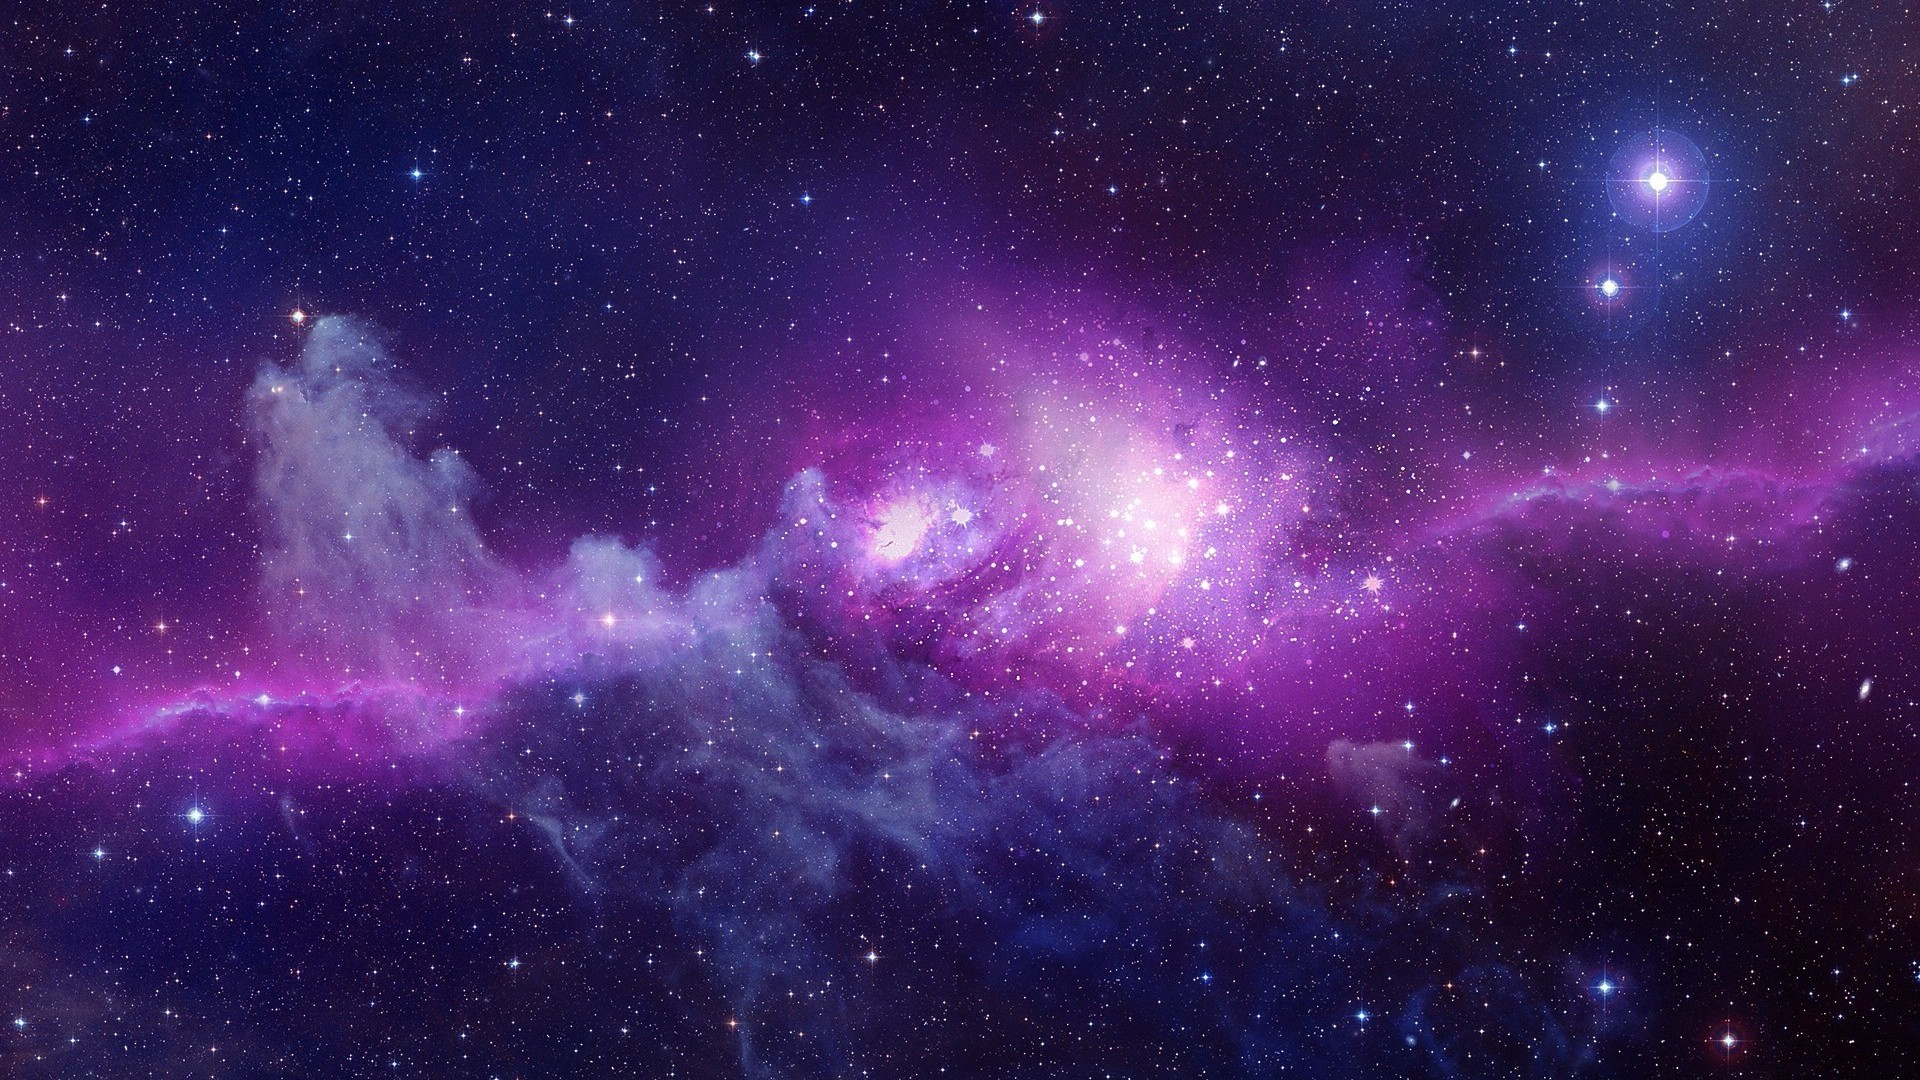 1920x1080 Free-Download-Galaxy-Backgrounds-Tumblr